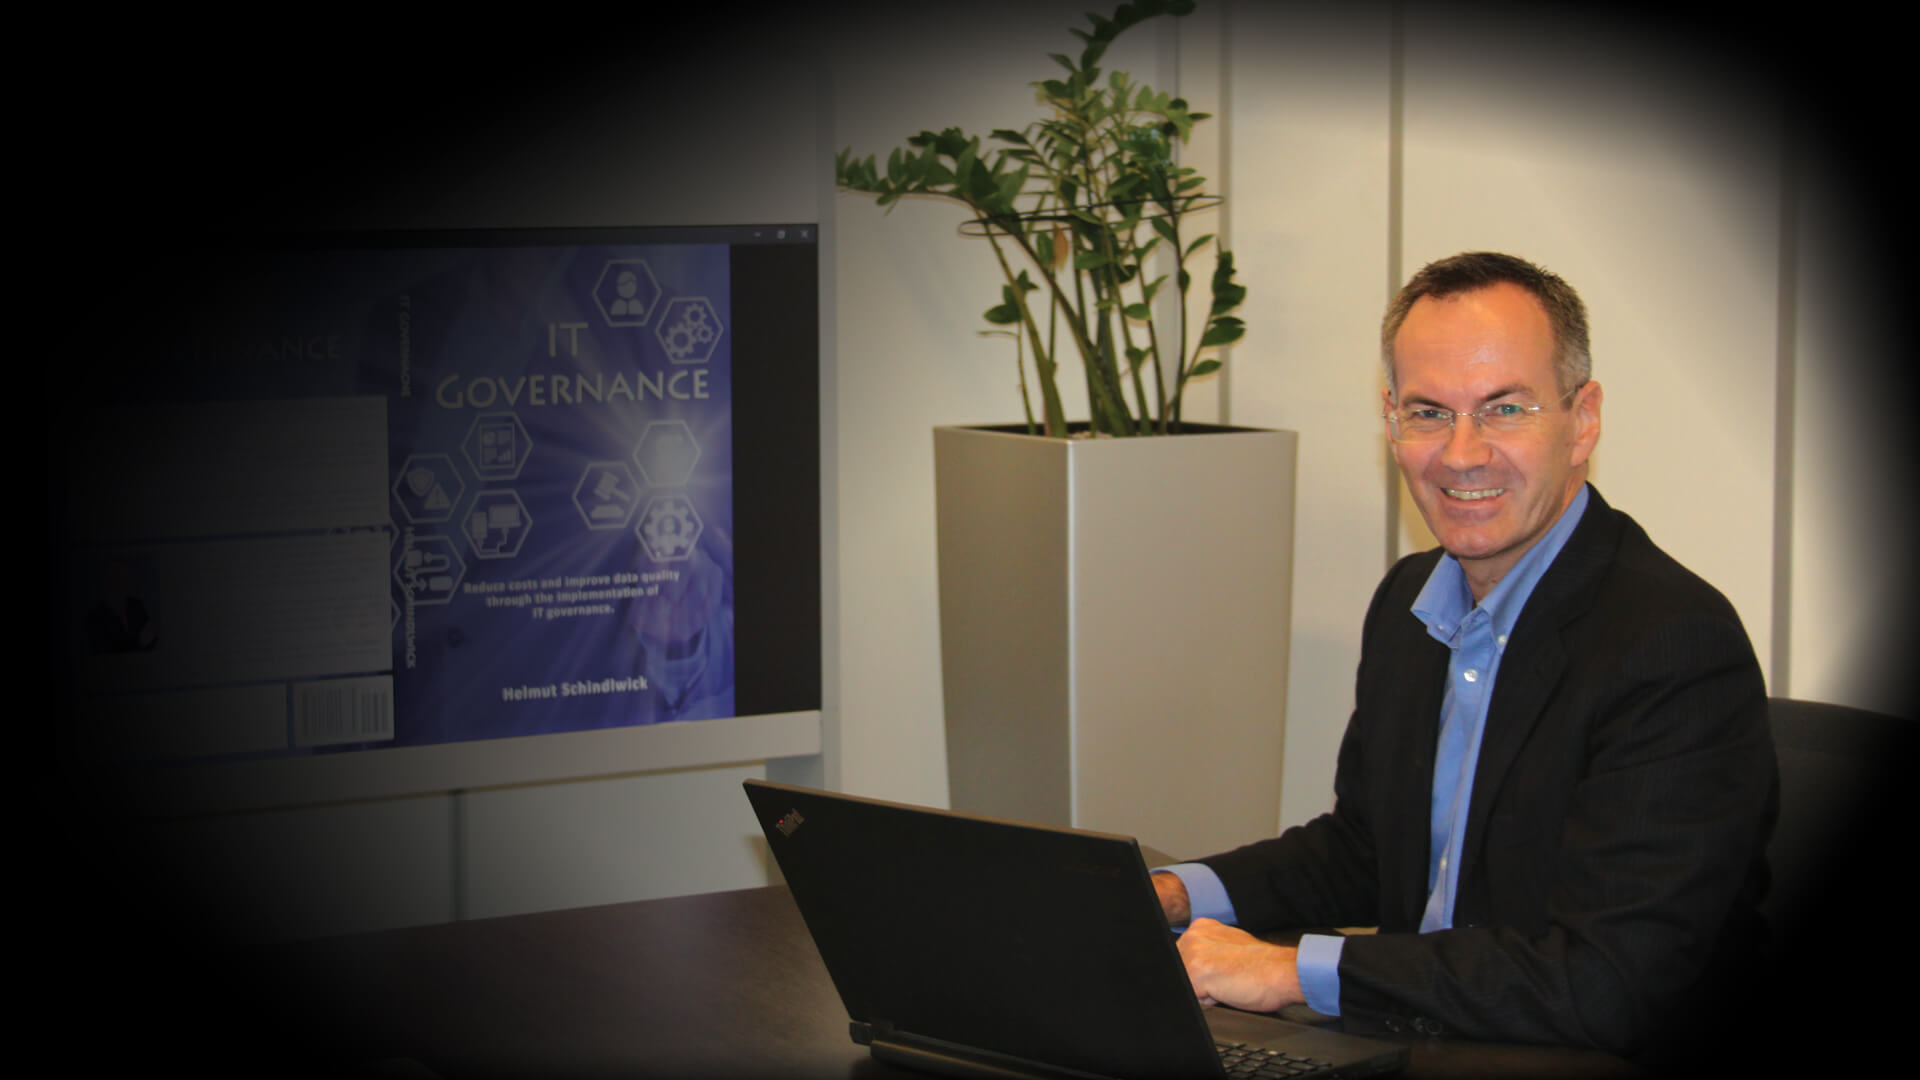 Helmut Schindlwick presenting IT Governance Book